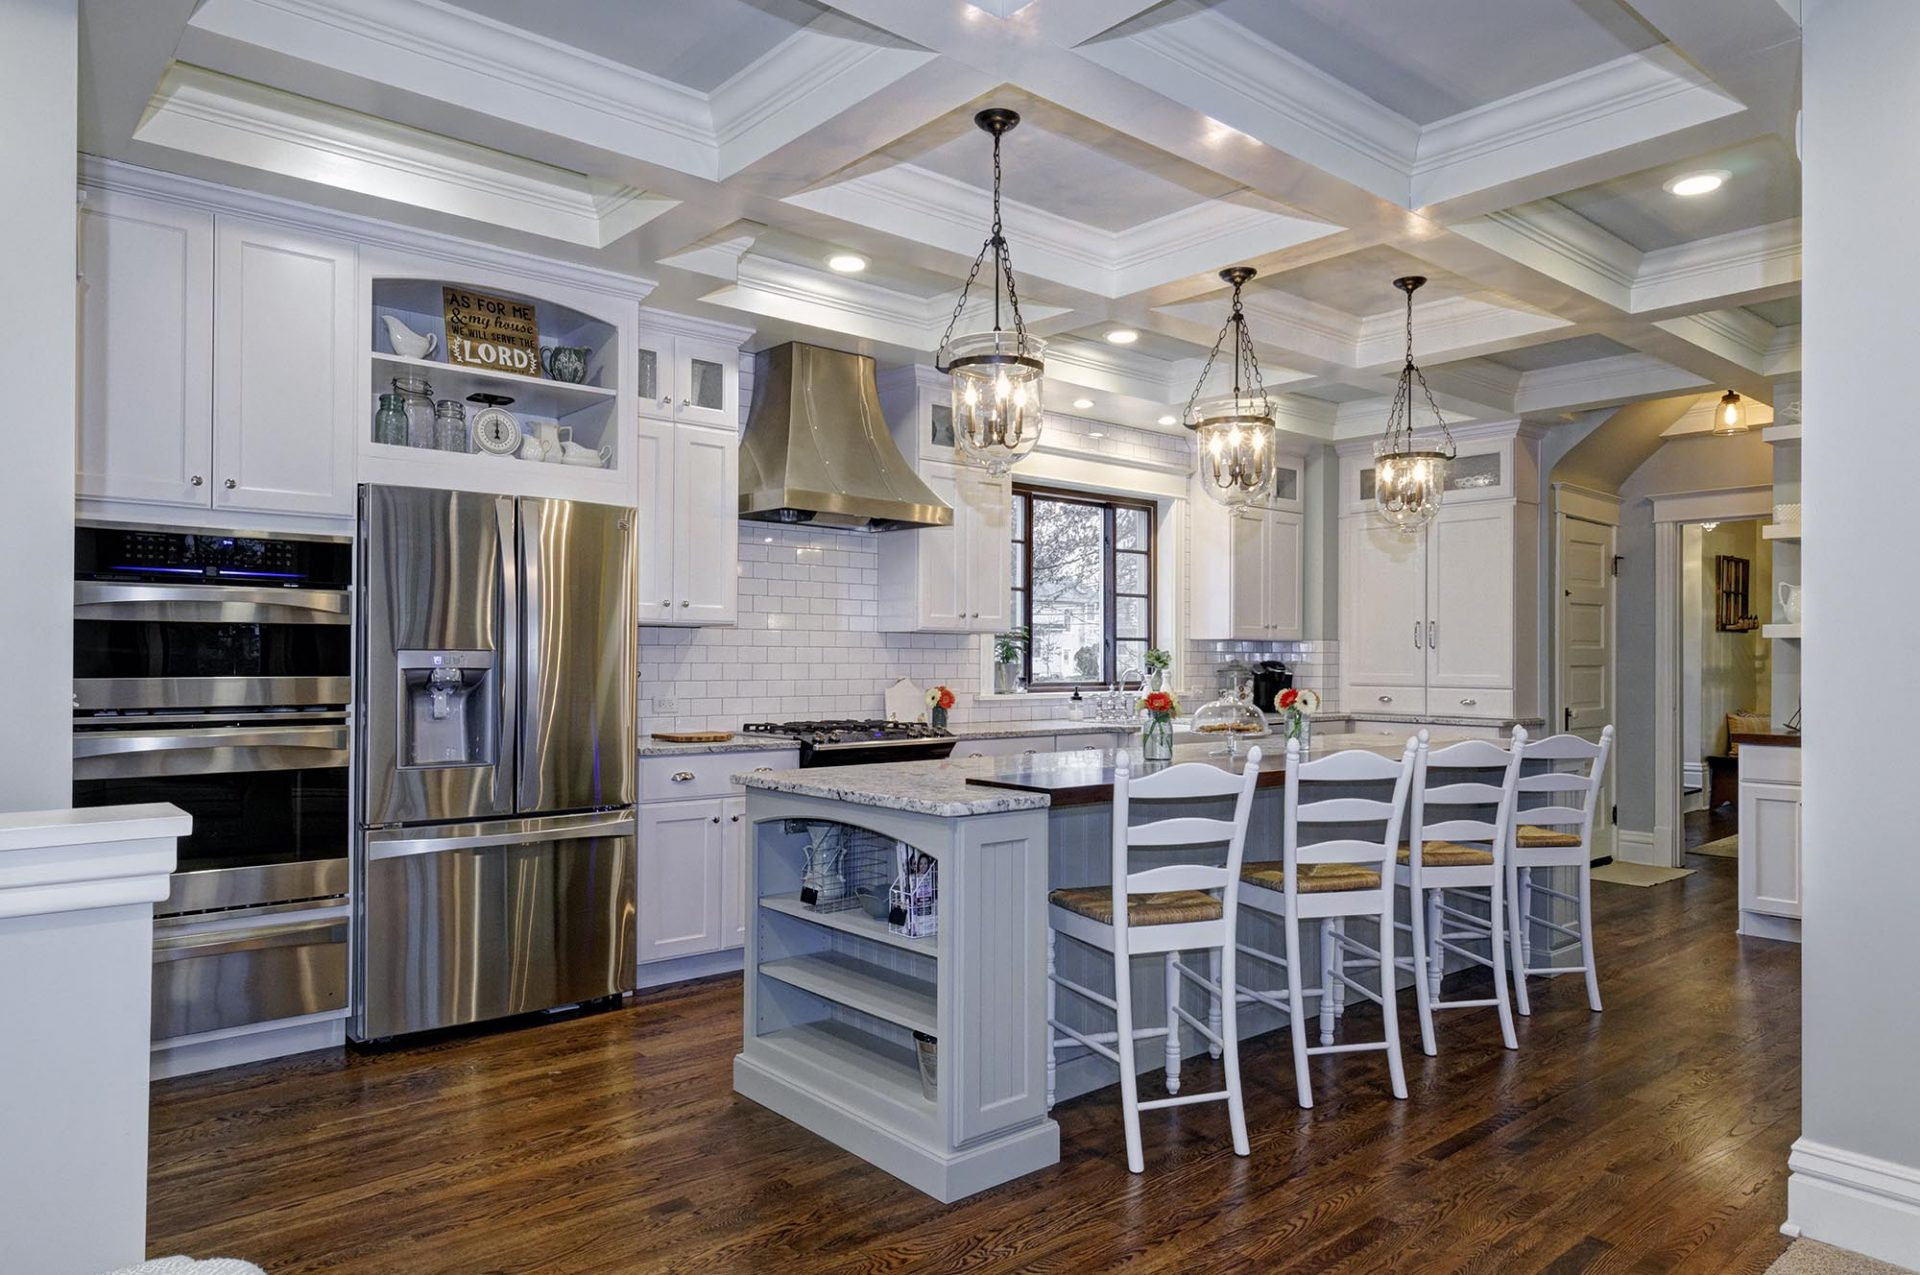 Room Addition, Worthington, Dave Fox, Remodel, Kitchen, island, granite, farm house, subway tile, range hood, white cabinets